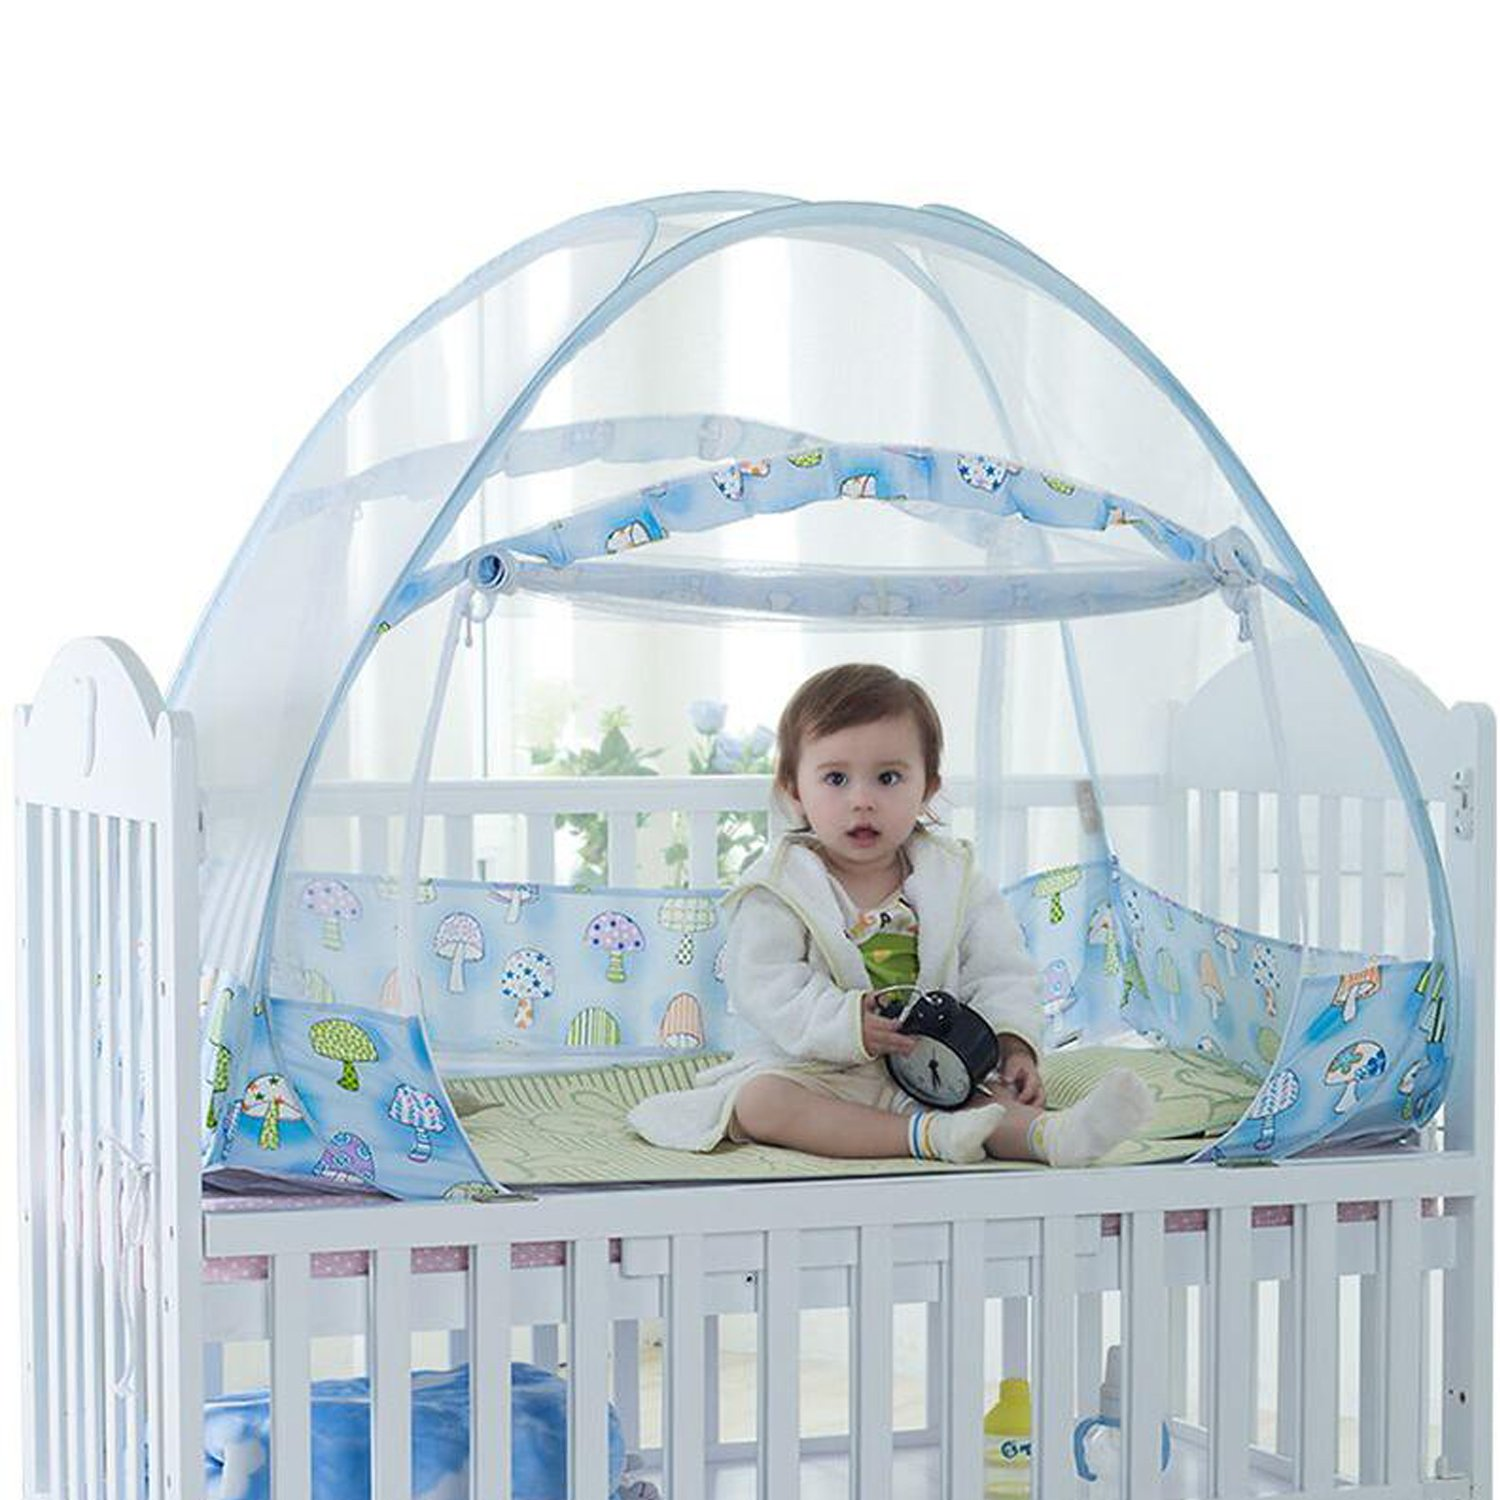 Baby Crib Tent Safety Net Pop Up Canopy Cover - Foldable Baby Bed Mosquito Net Tent Kids Nursery Crib Canopy Netting